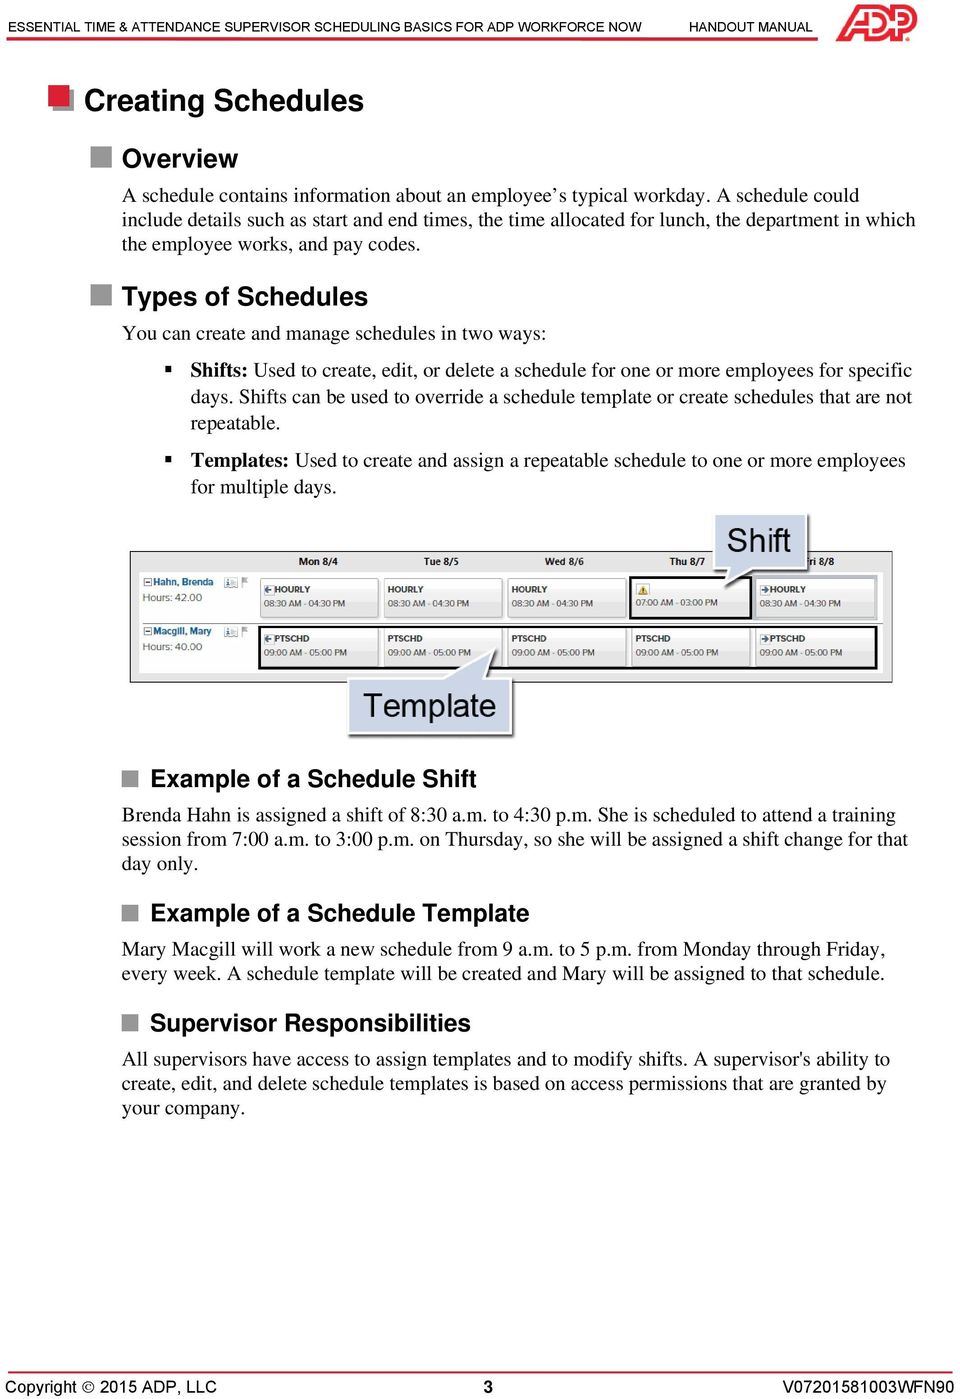 essential time attendance supervisor scheduling basics pdf